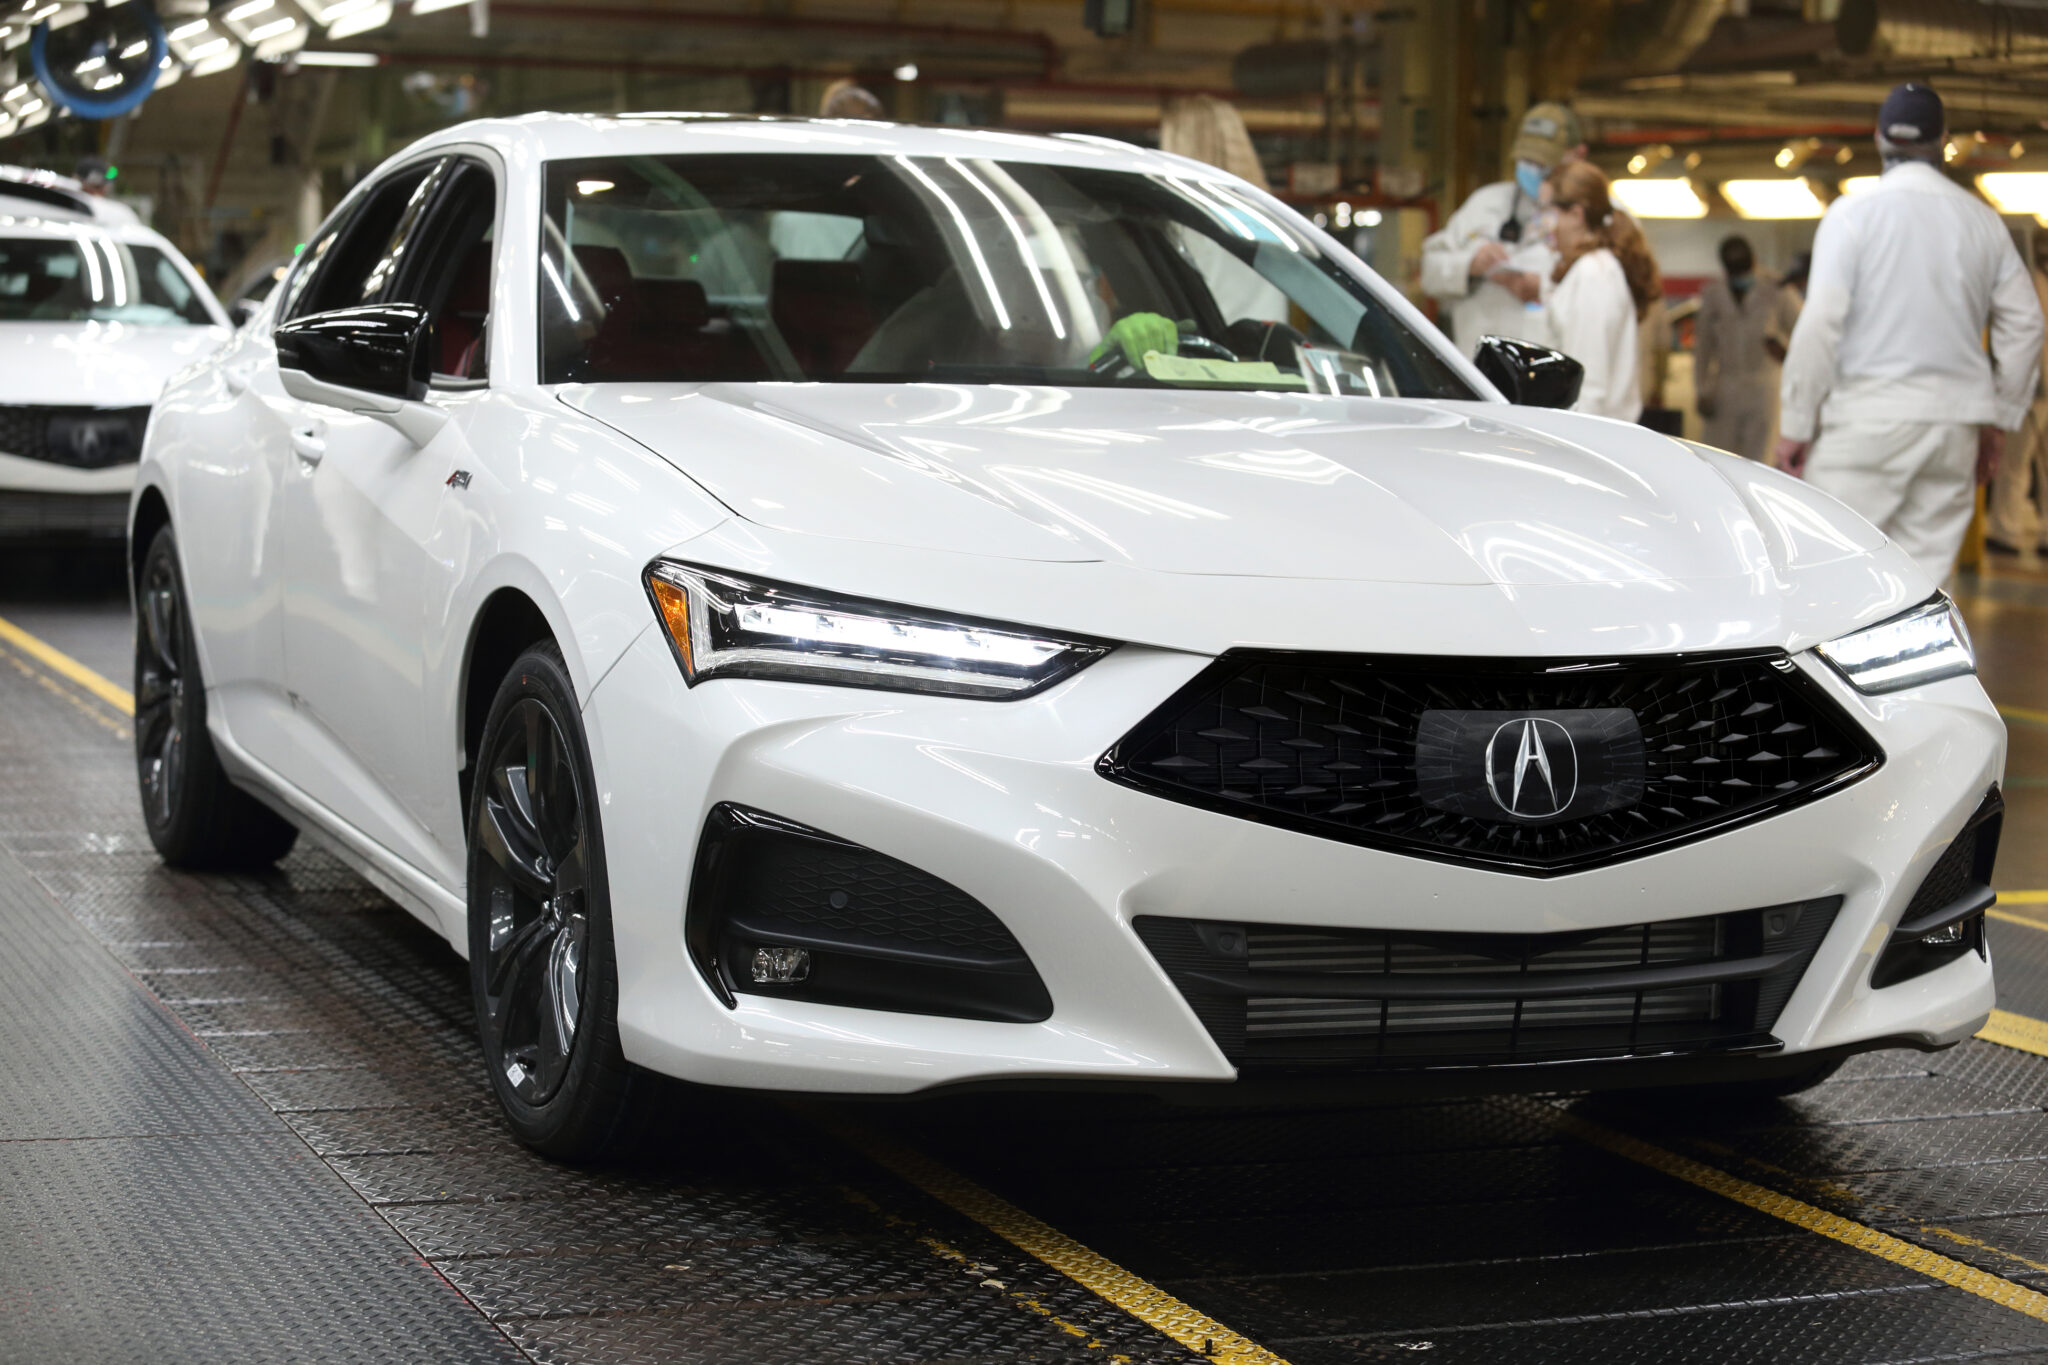 ALL-NEW ACURA TLX BEGINS PRODUCTION